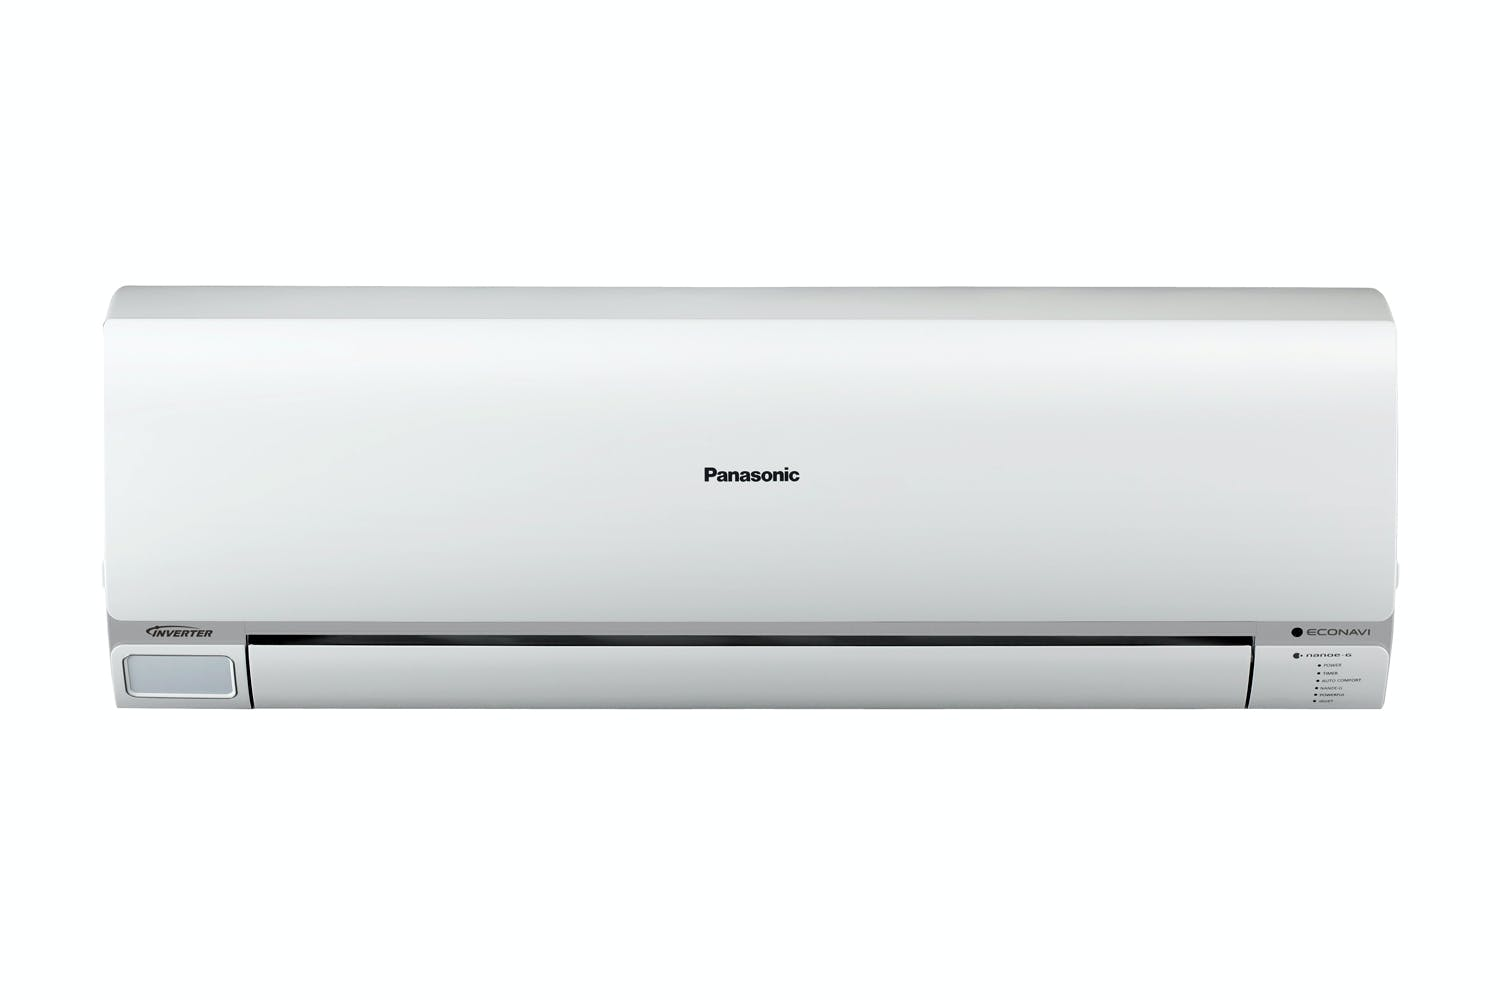 toronto products ductless furnace water ac fireplace mitsubishi heating air central service conditioning slim repair mr conditioner installation sales